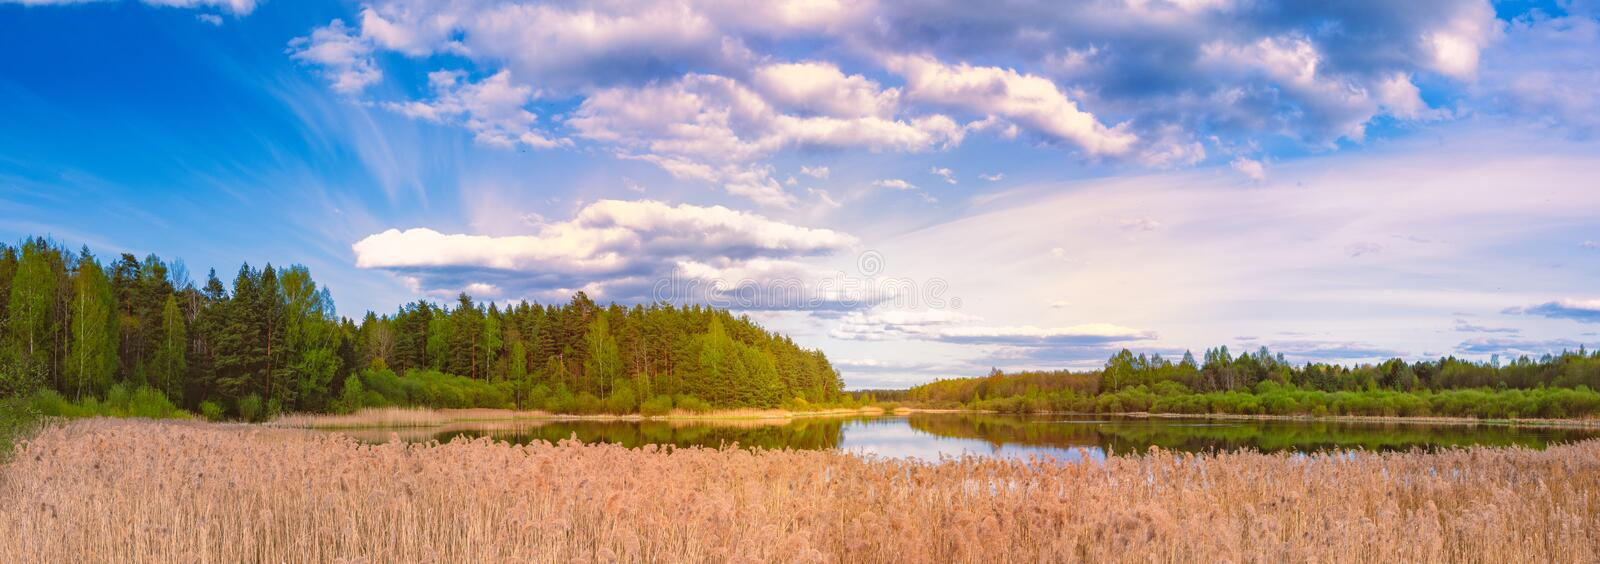 Sunset over lake with forest. Blue sky and clouds stock image